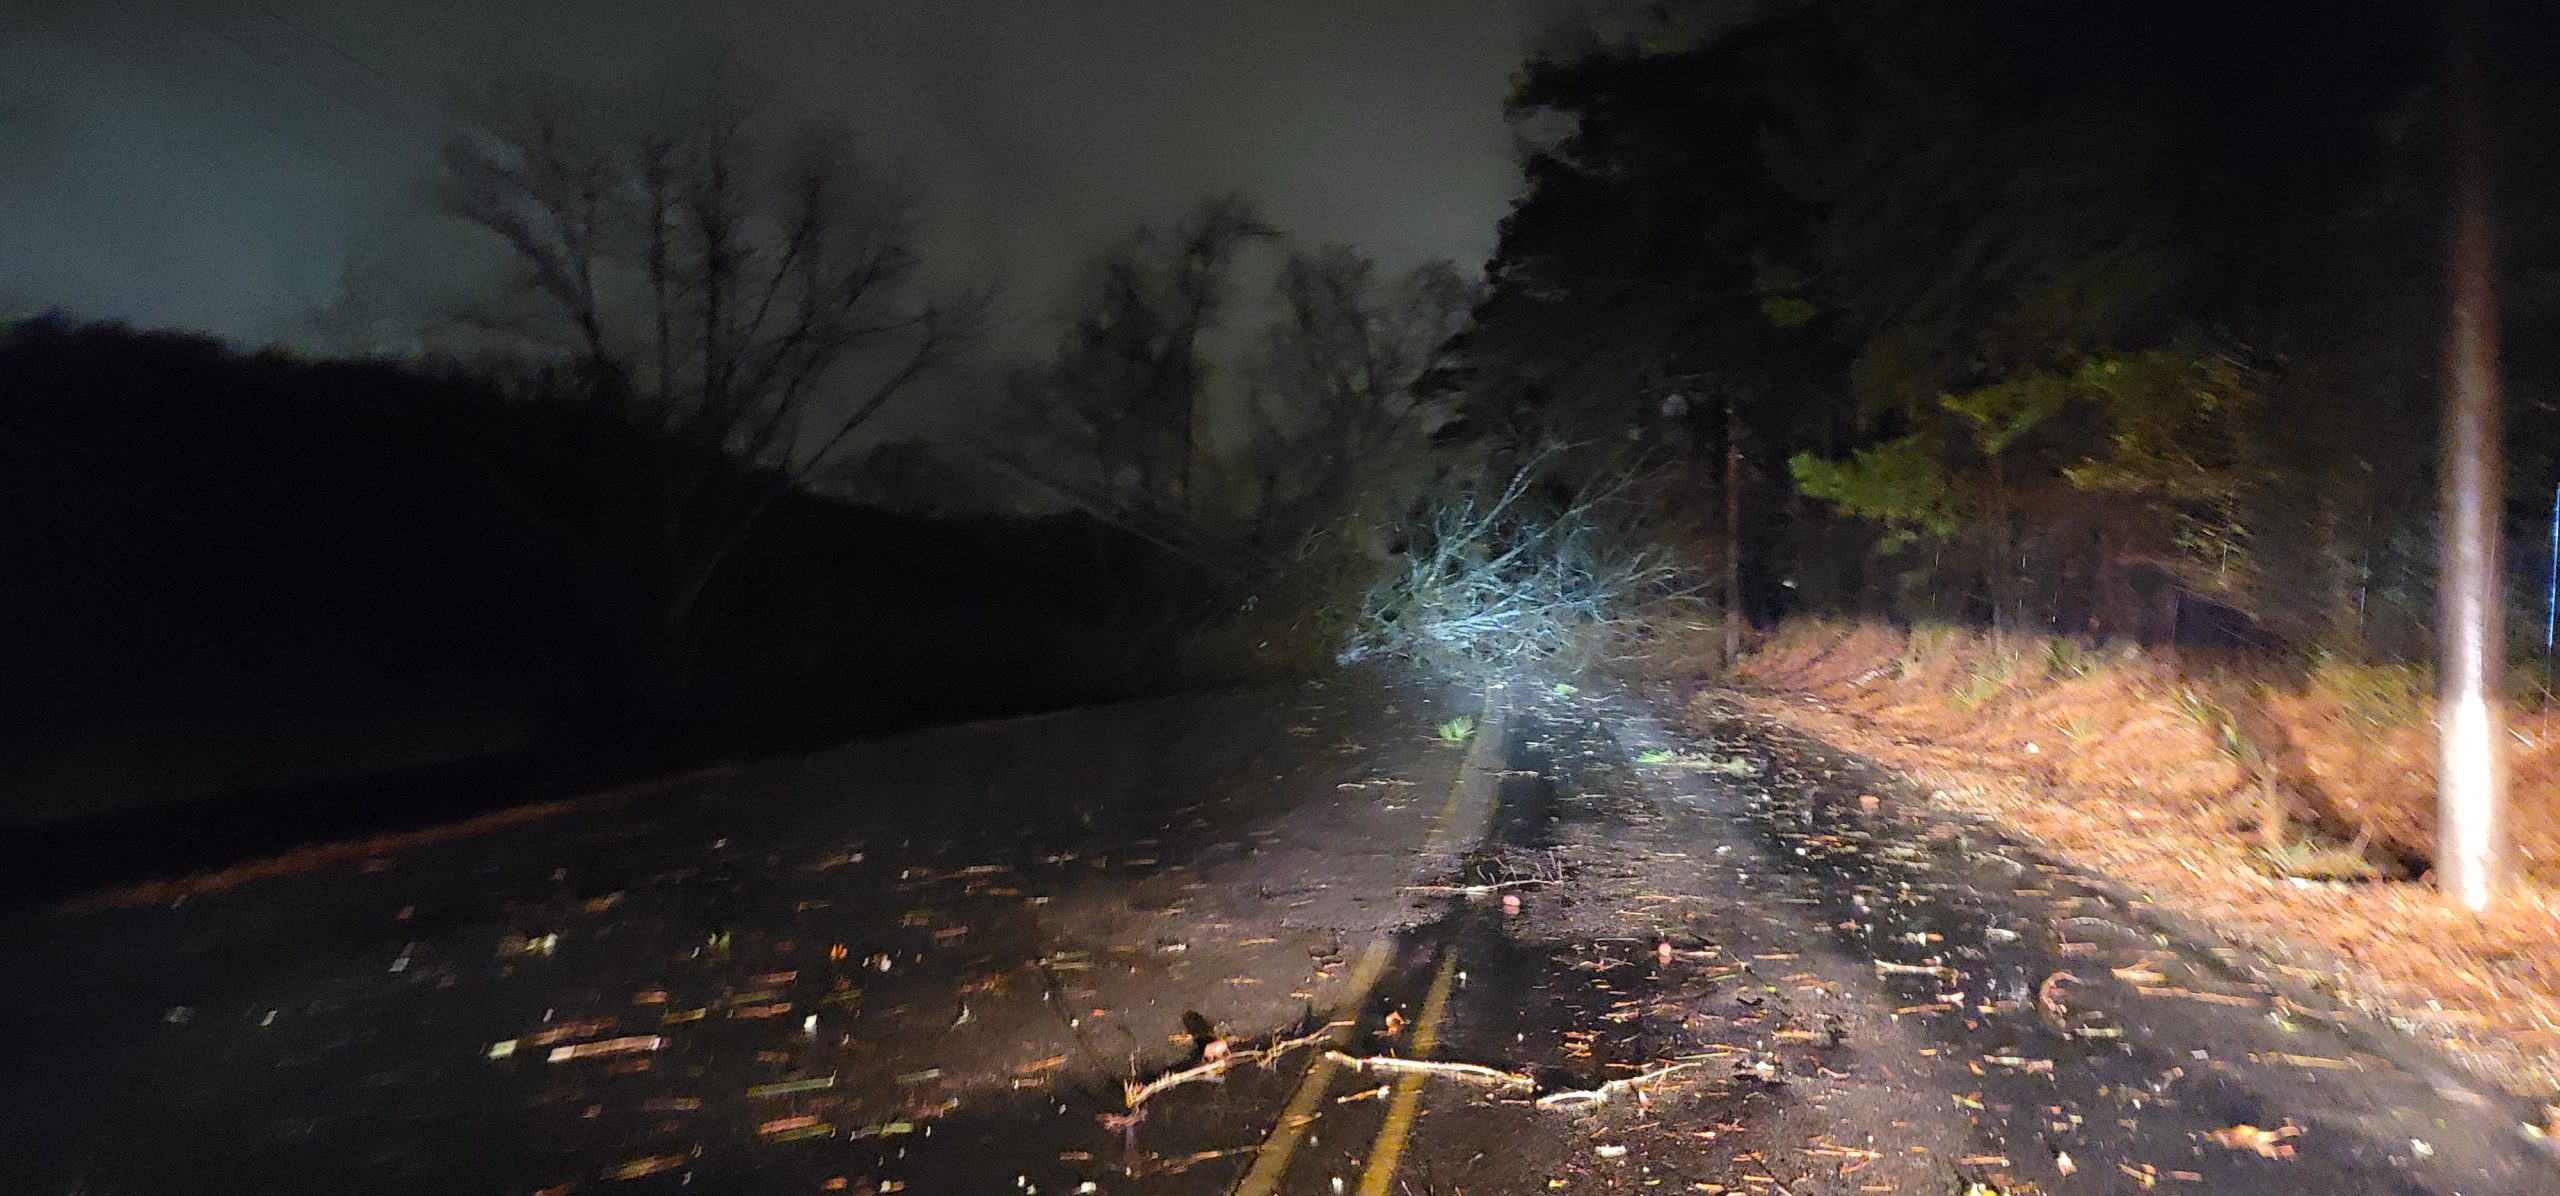 PHOTOS: Trees, power lines and more damage in northeastern Jefferson County